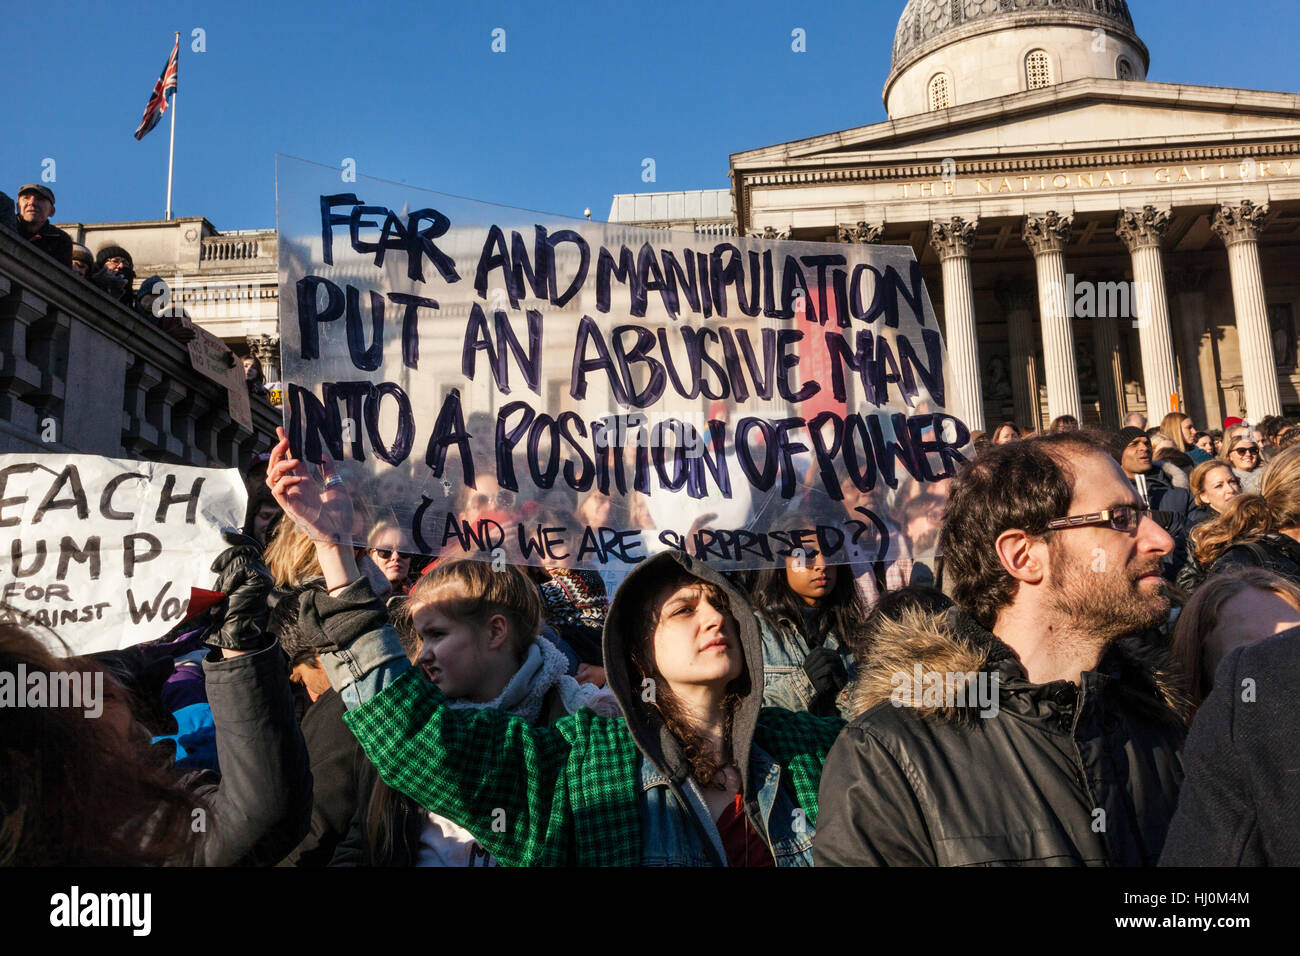 London, United Kingdom, 21st January 2017: Following Donald Trump's inauguration on 20th January, 100,000 protesters - Stock Image